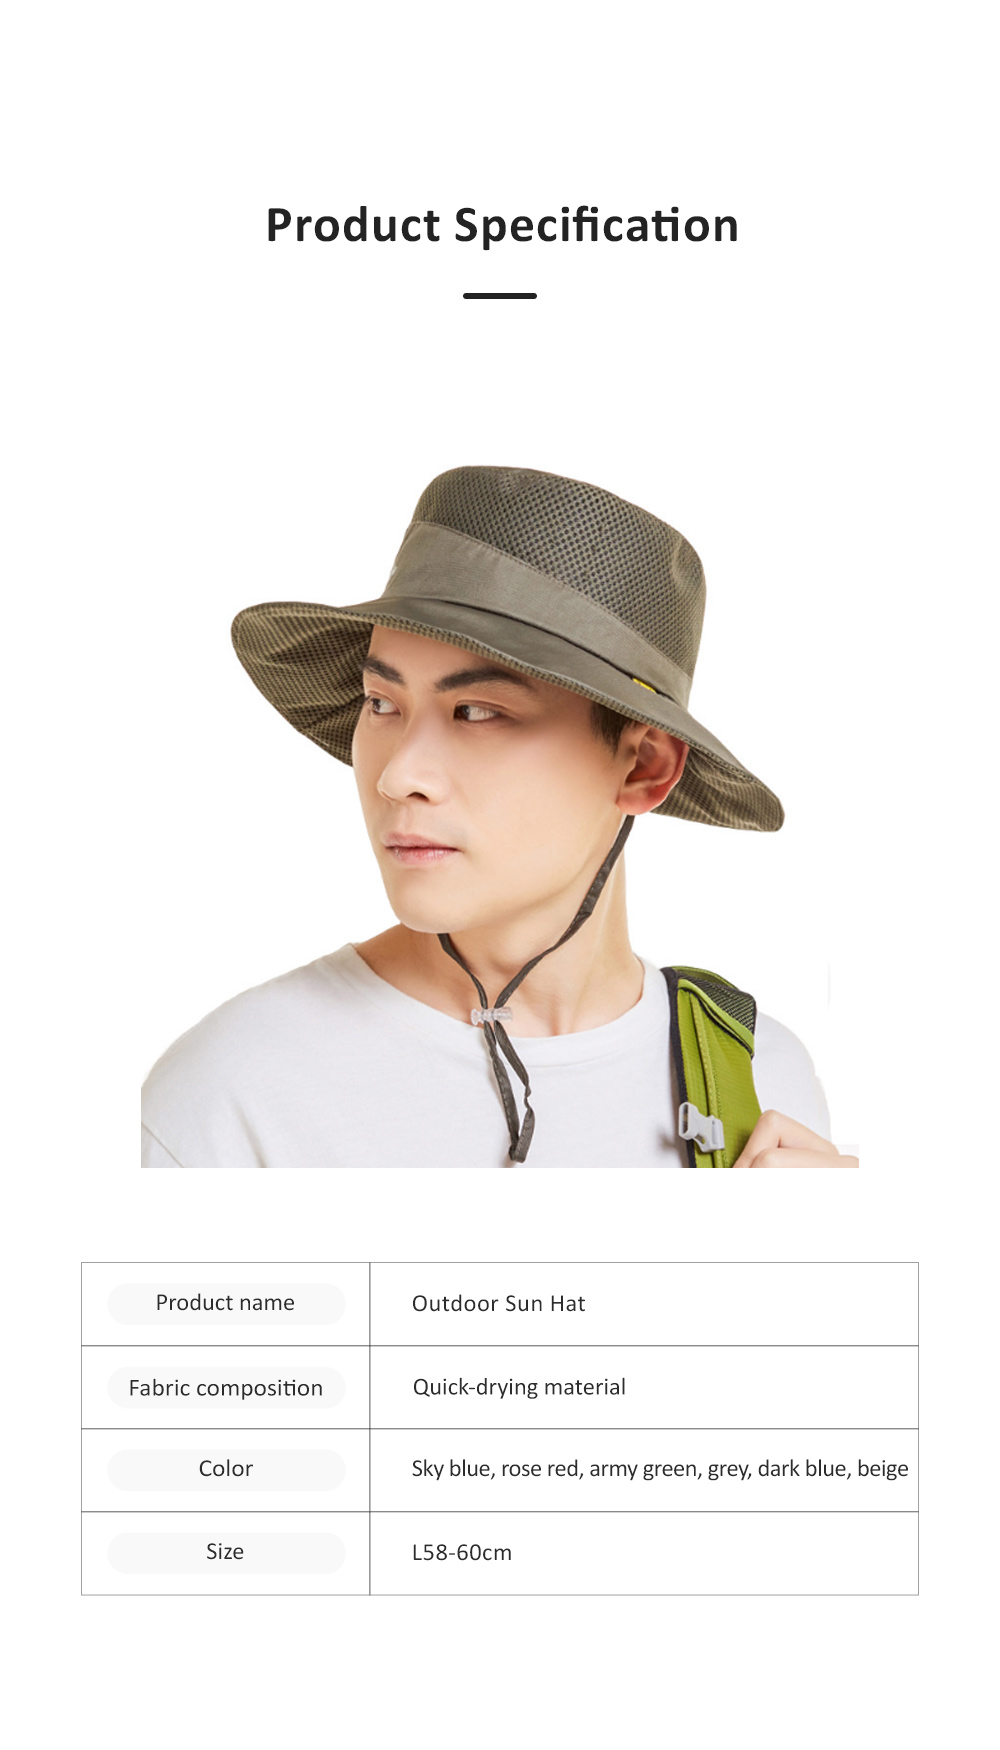 Outdoor Sunhat for Outdoor Enthusiast, Colorful Option Flat Brim Fisherman Hat, Wind Rope Buckle Quick Drying Flat Brim Cap 8